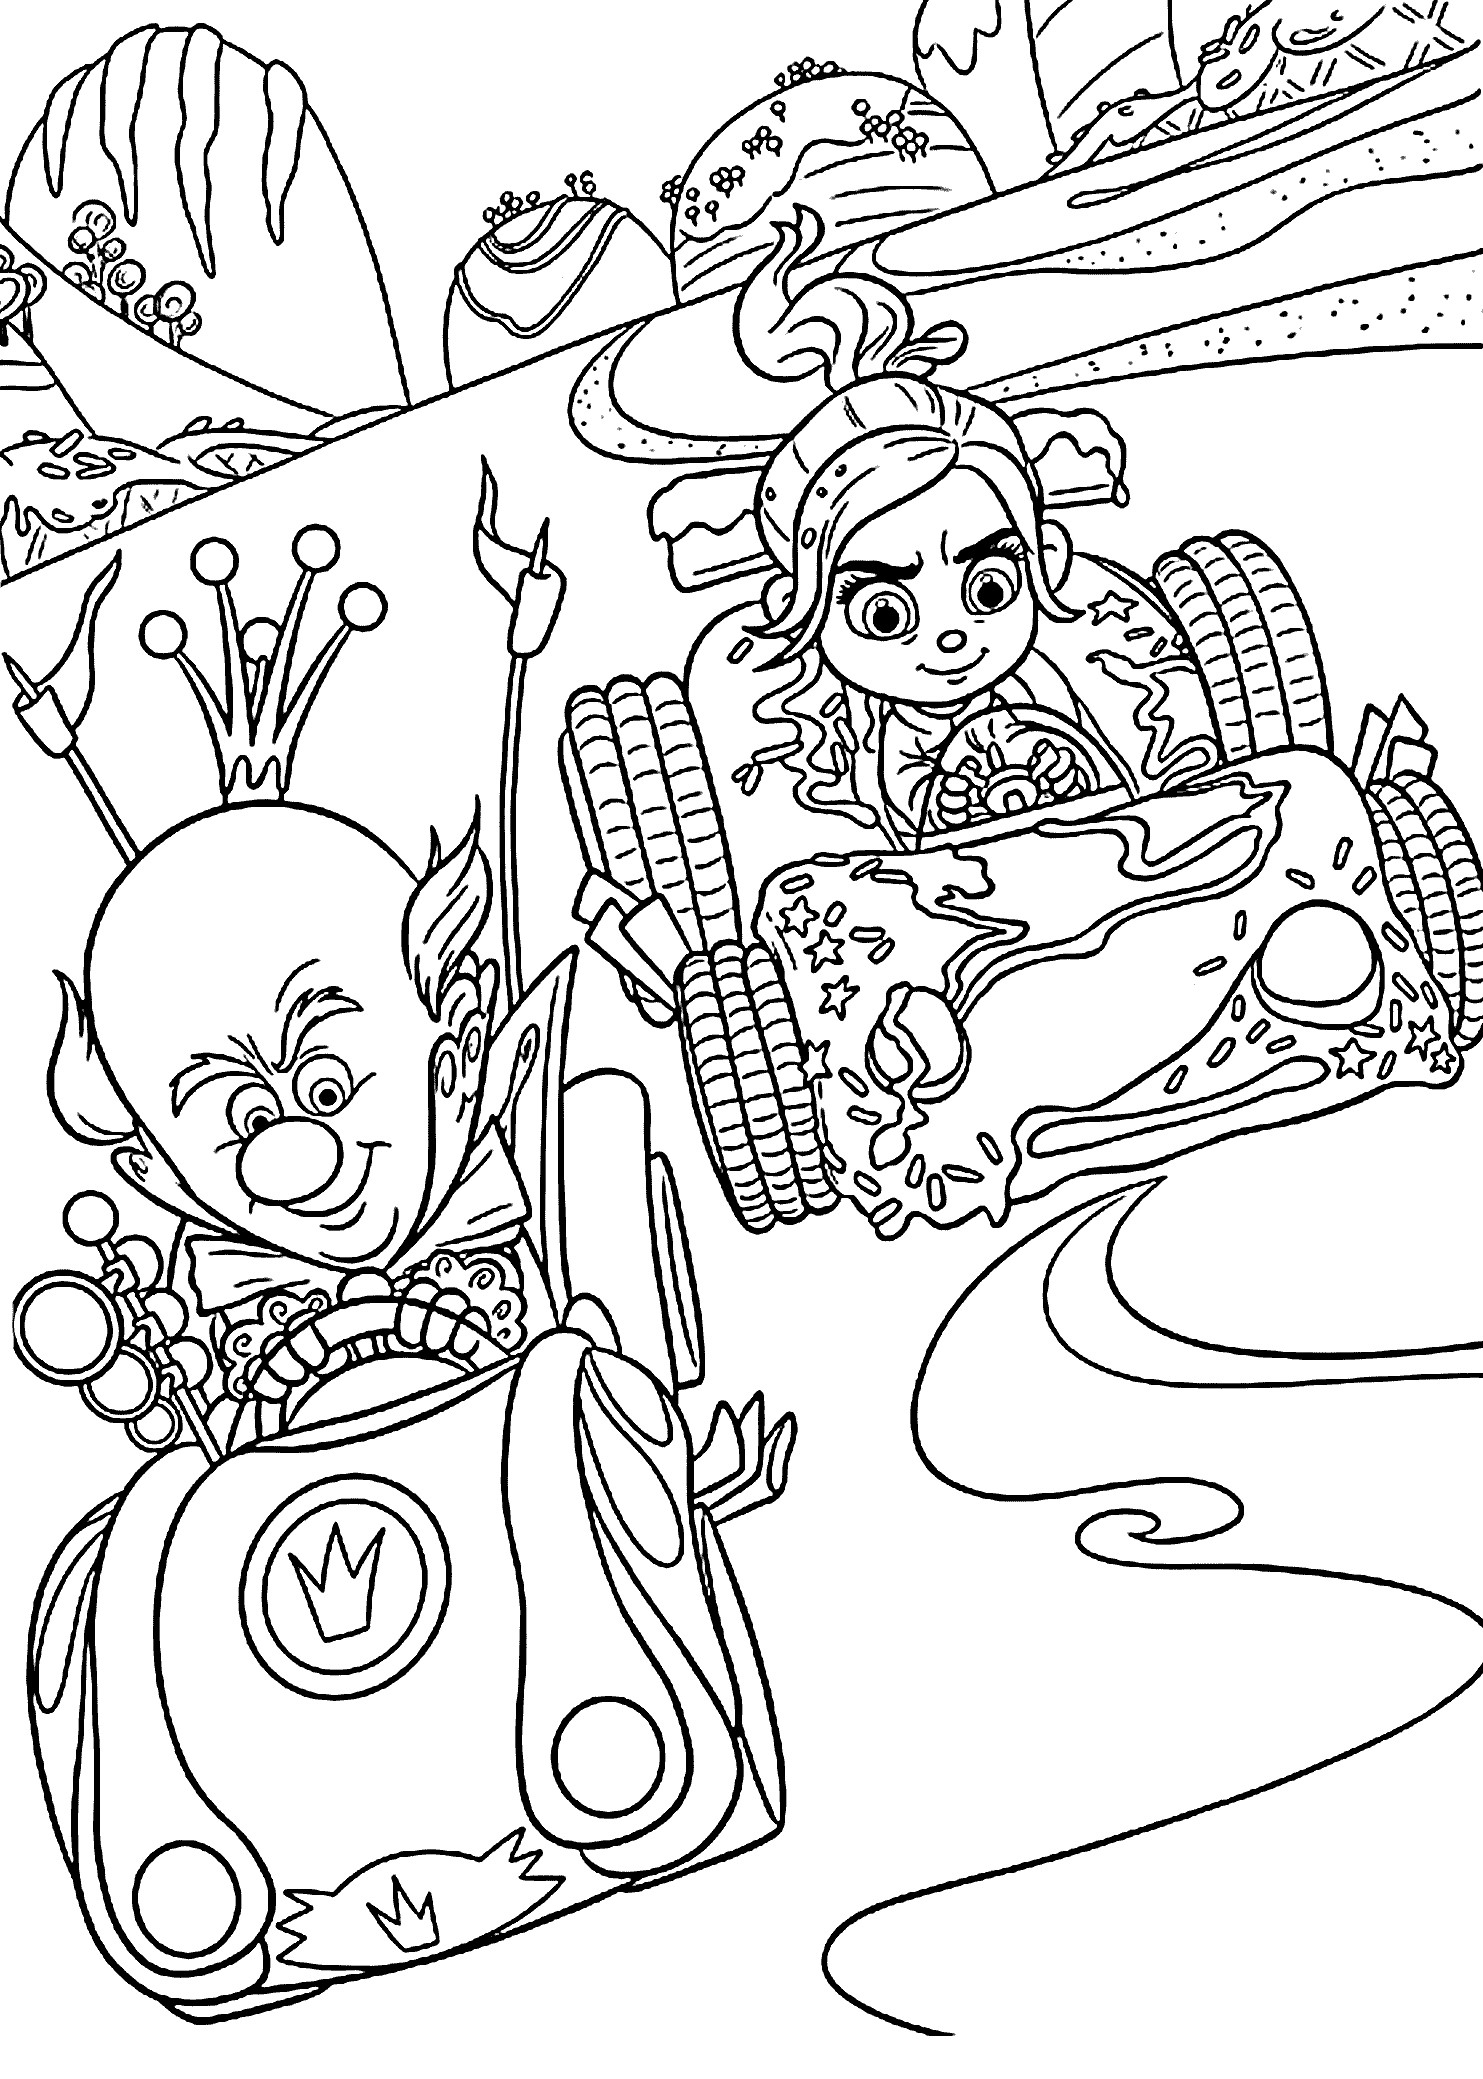 1483x2079 Cool Ralph And Vanellope Coloring Pages For Kids Inspirational